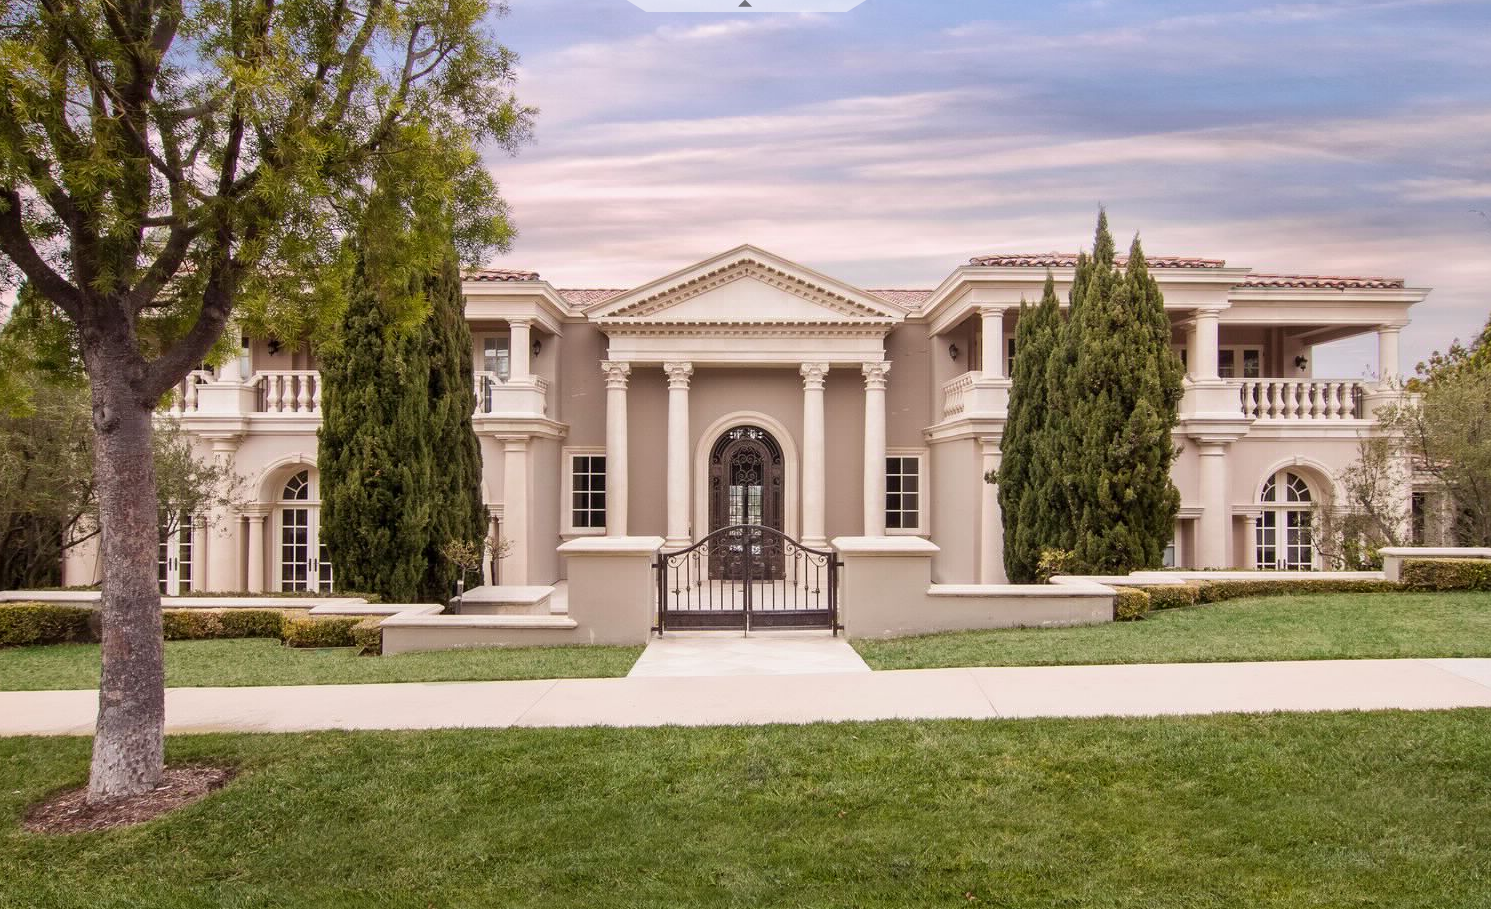 Mansions Amp More Magnificent California Mansion For 7 500 000